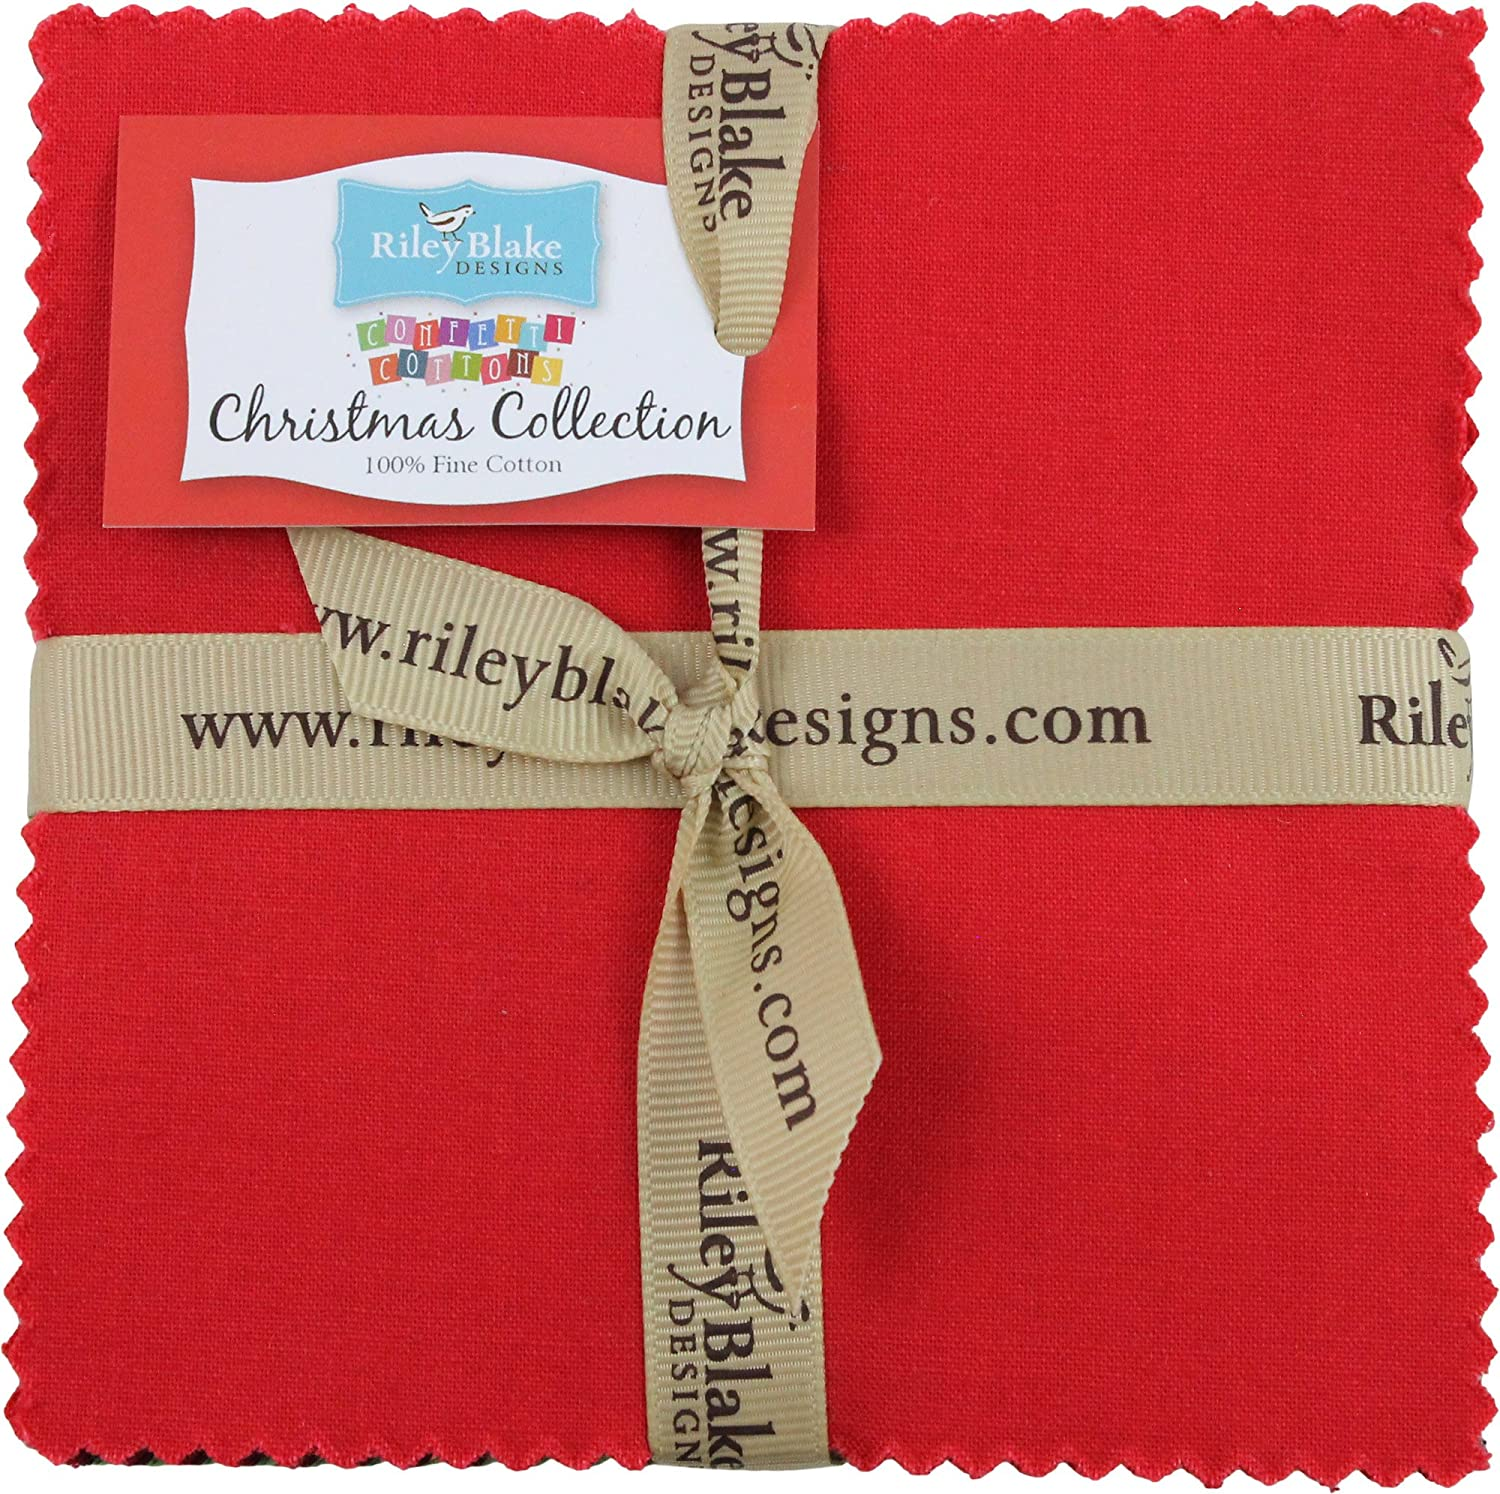 Confetti Cottons Christmas 5 Stacker 42 5-inch Squares Charm Pack Riley Blake Designs 5-CH120-42